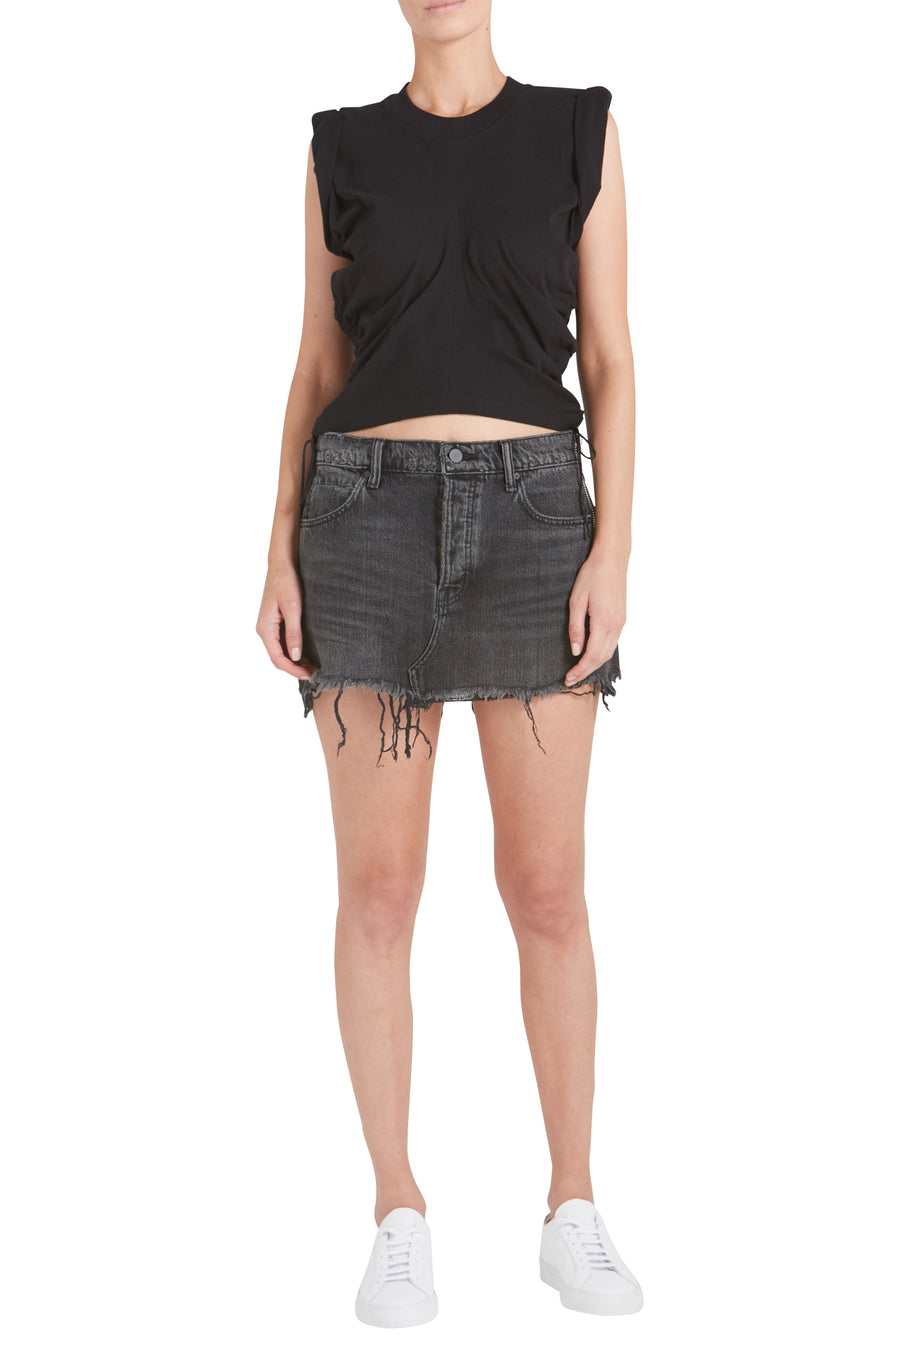 HIGH TWIST JERSEY CROP TOP WITH SIDE TIES